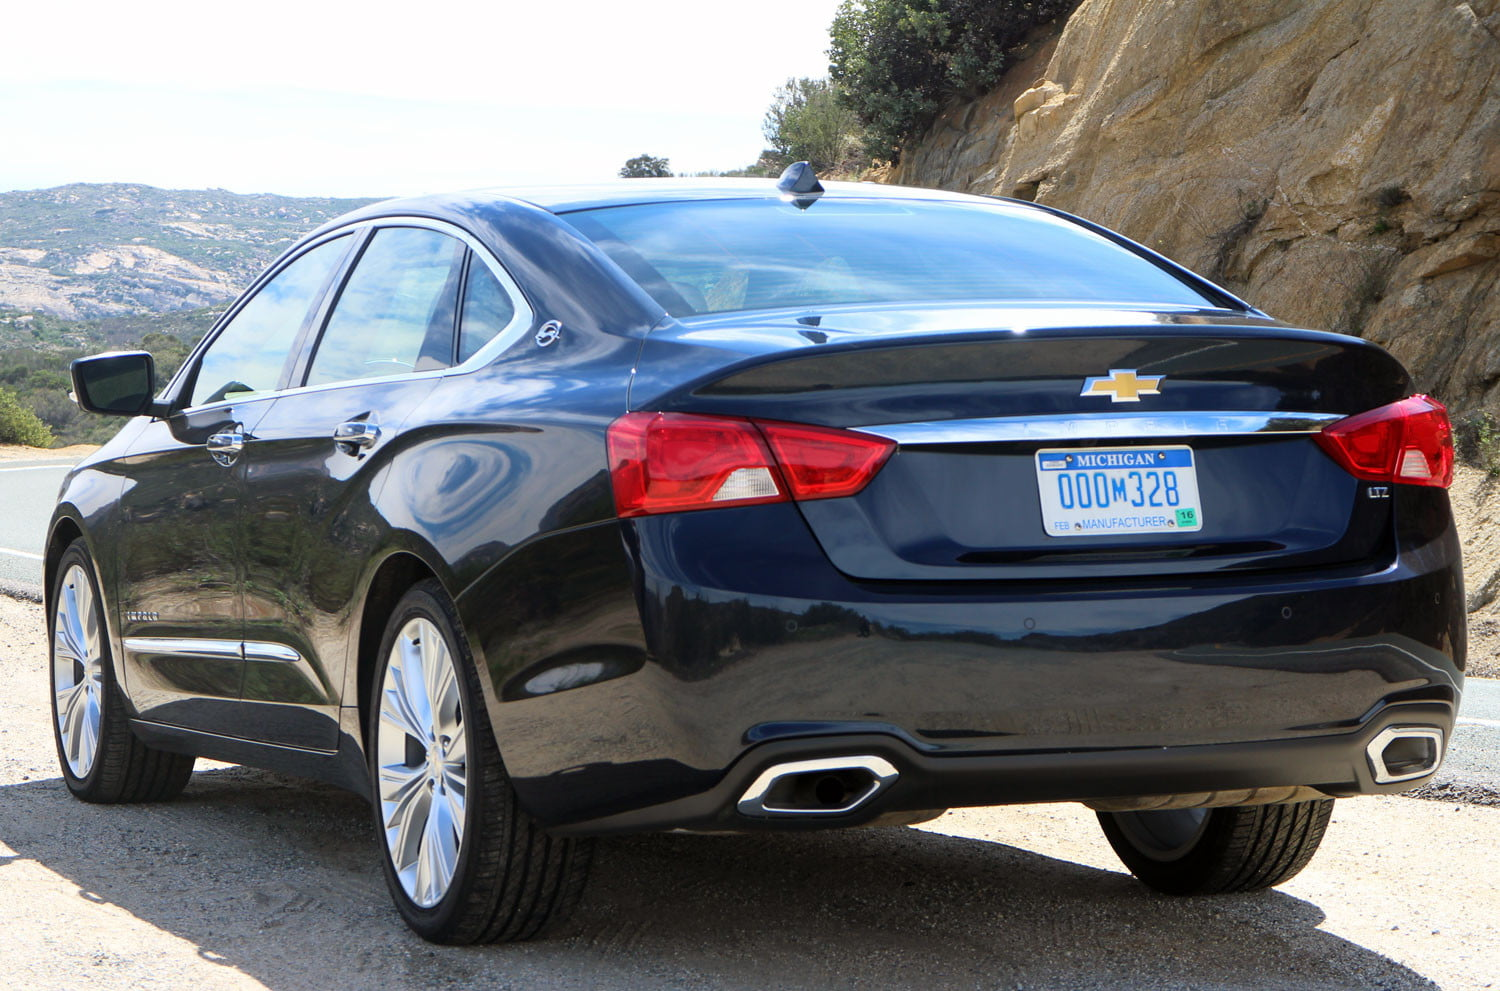 First drive 2014 chevrolet impala digital trends 2014 chevrolet impala navy rear left angle voltagebd Image collections